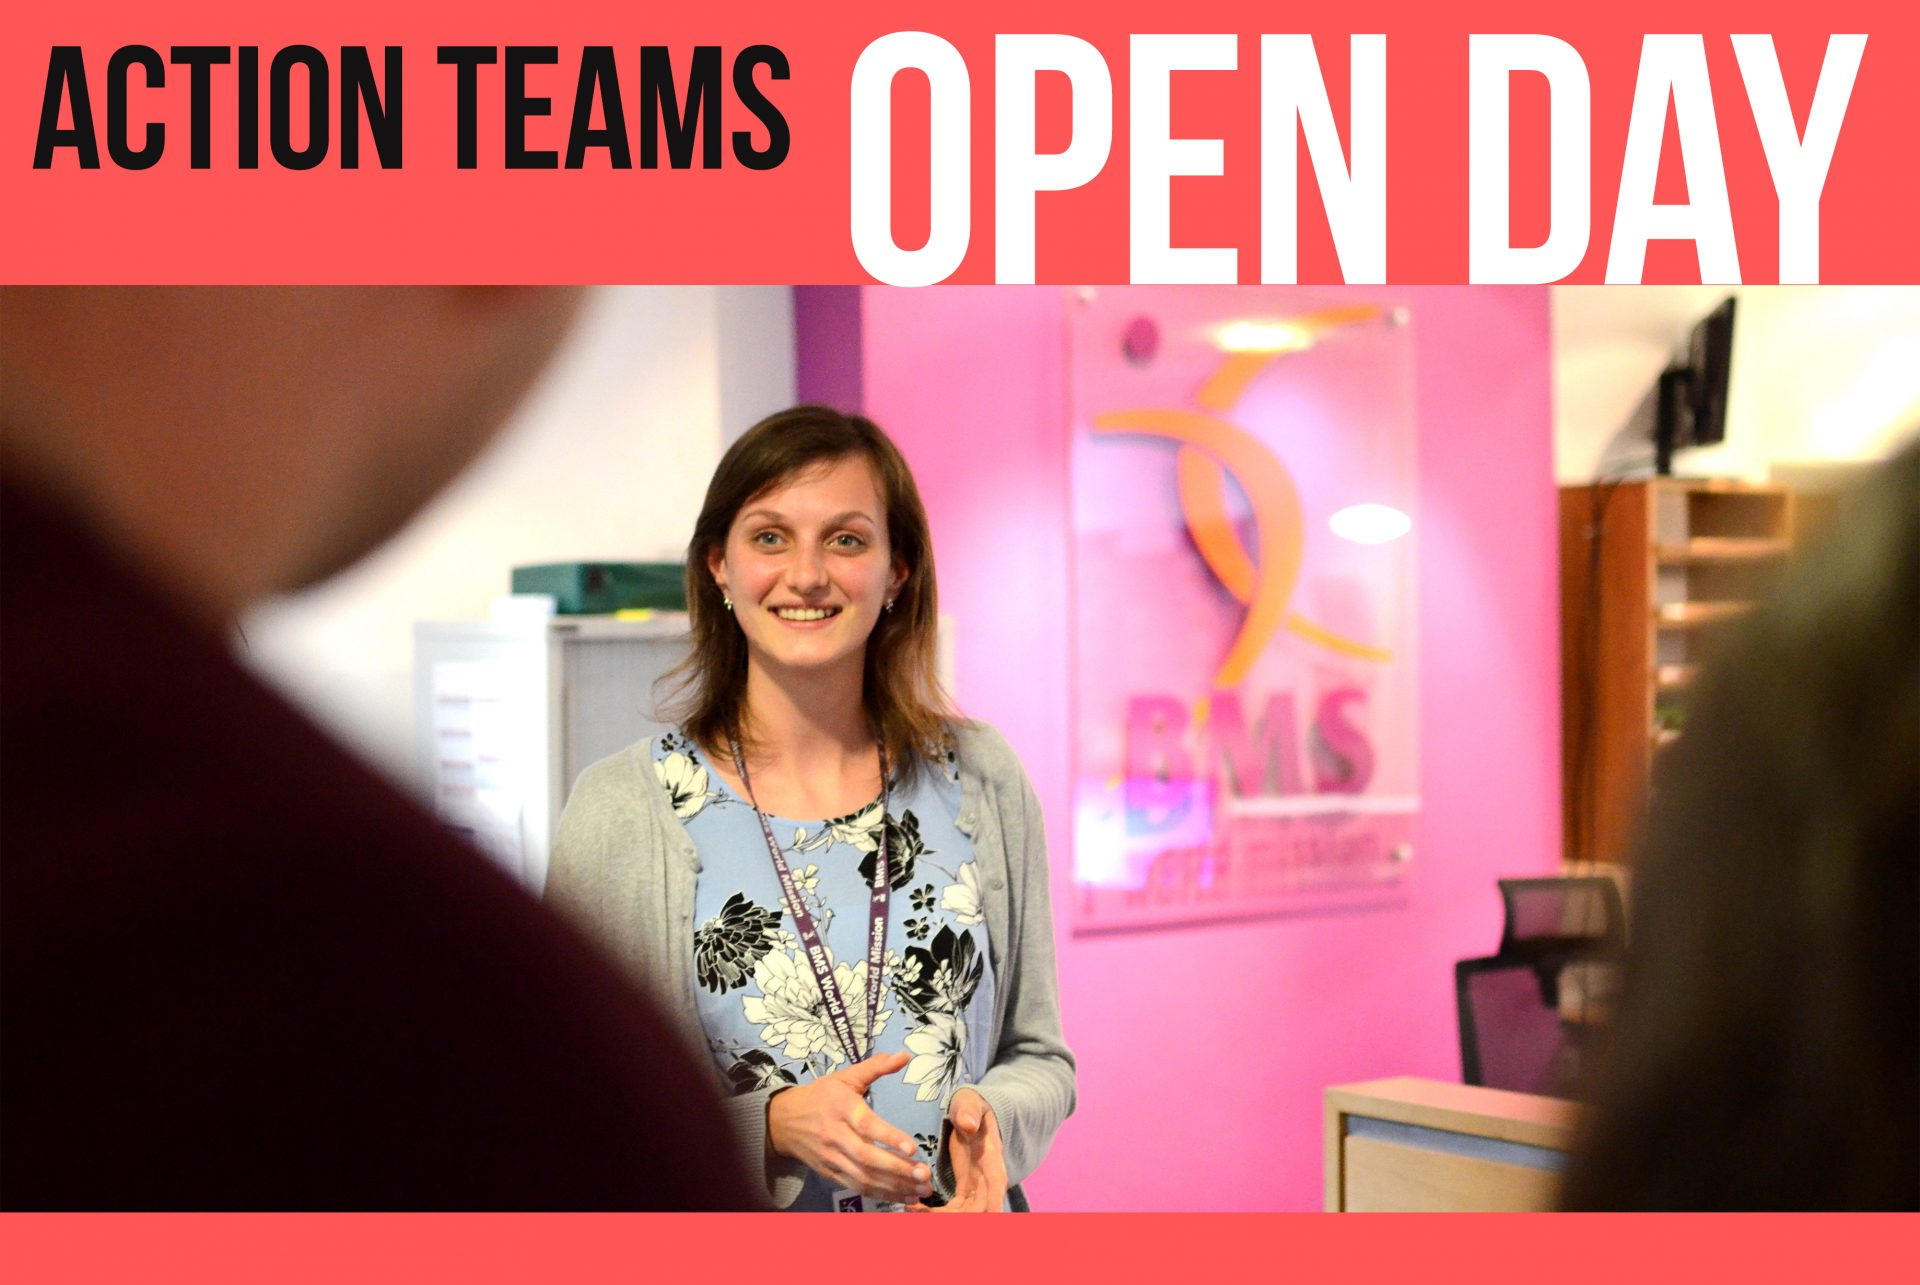 Open Day - Advert_0000_AT - Open Day - Image 1